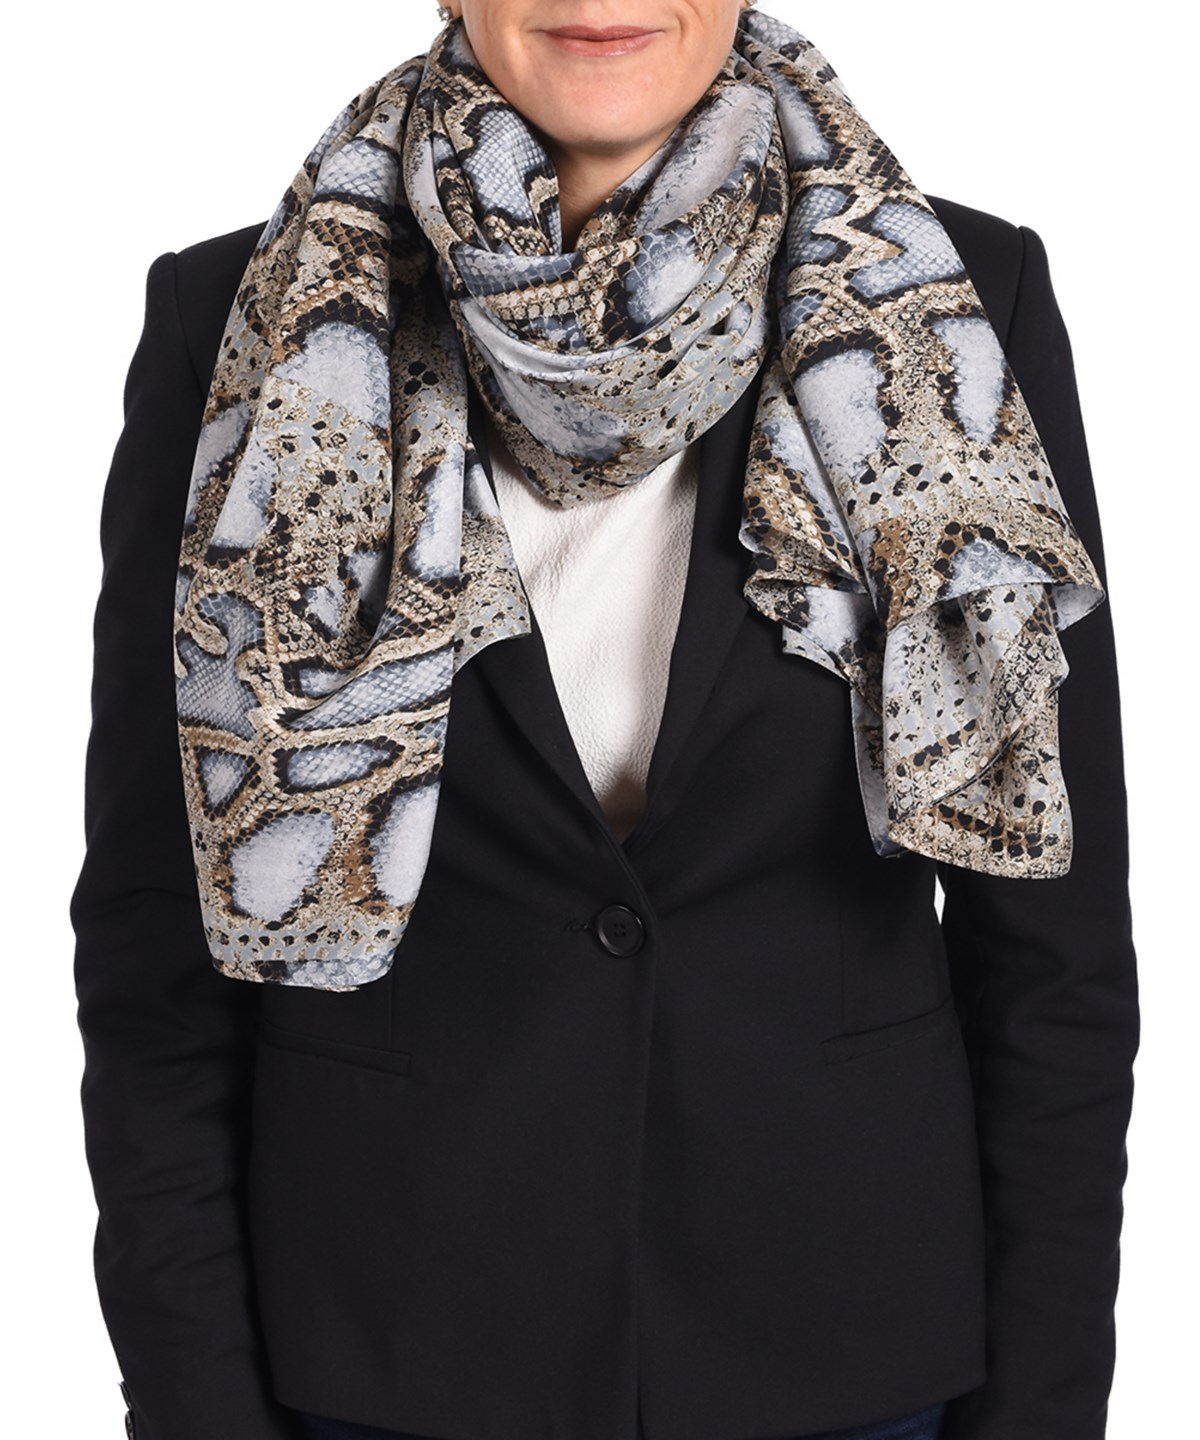 ROBERTO CAVALLI Roberto Cavalli Women'S Snake Skin Patterned Silk Scarf' at Bluefly